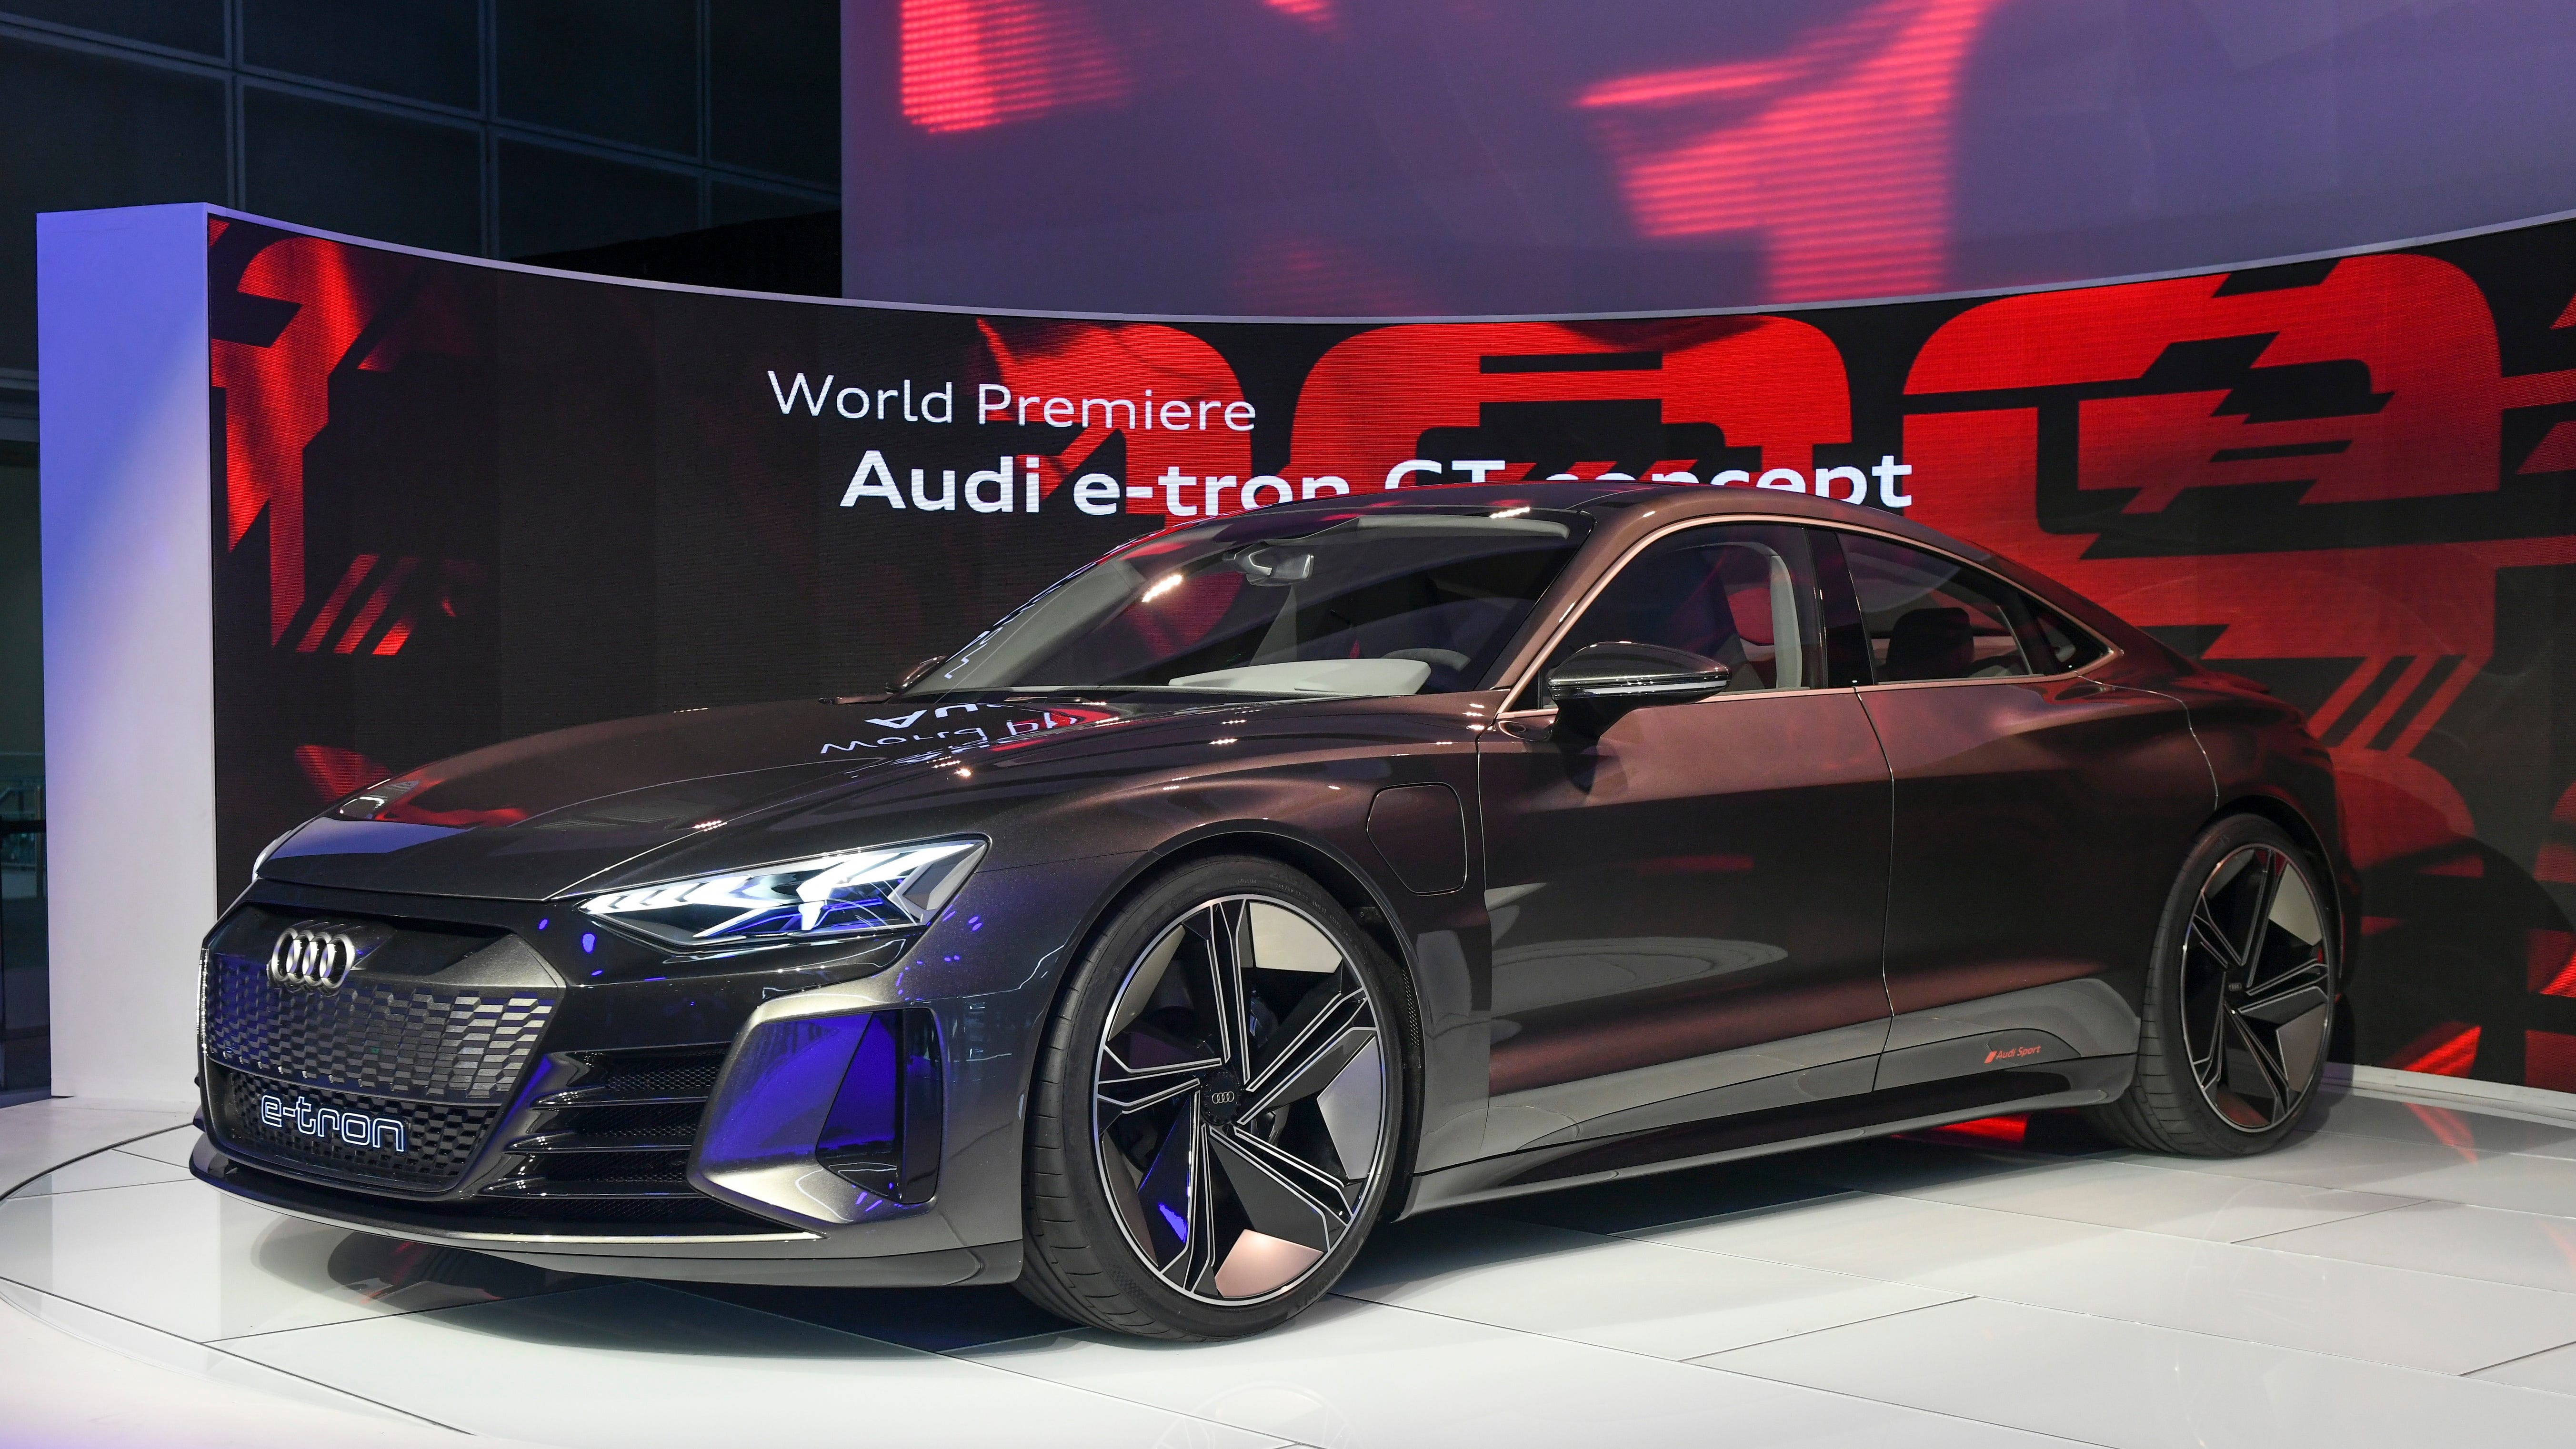 The Audi e-tron GT concept car is on display during press preview day at Los Angeles Auto Show.